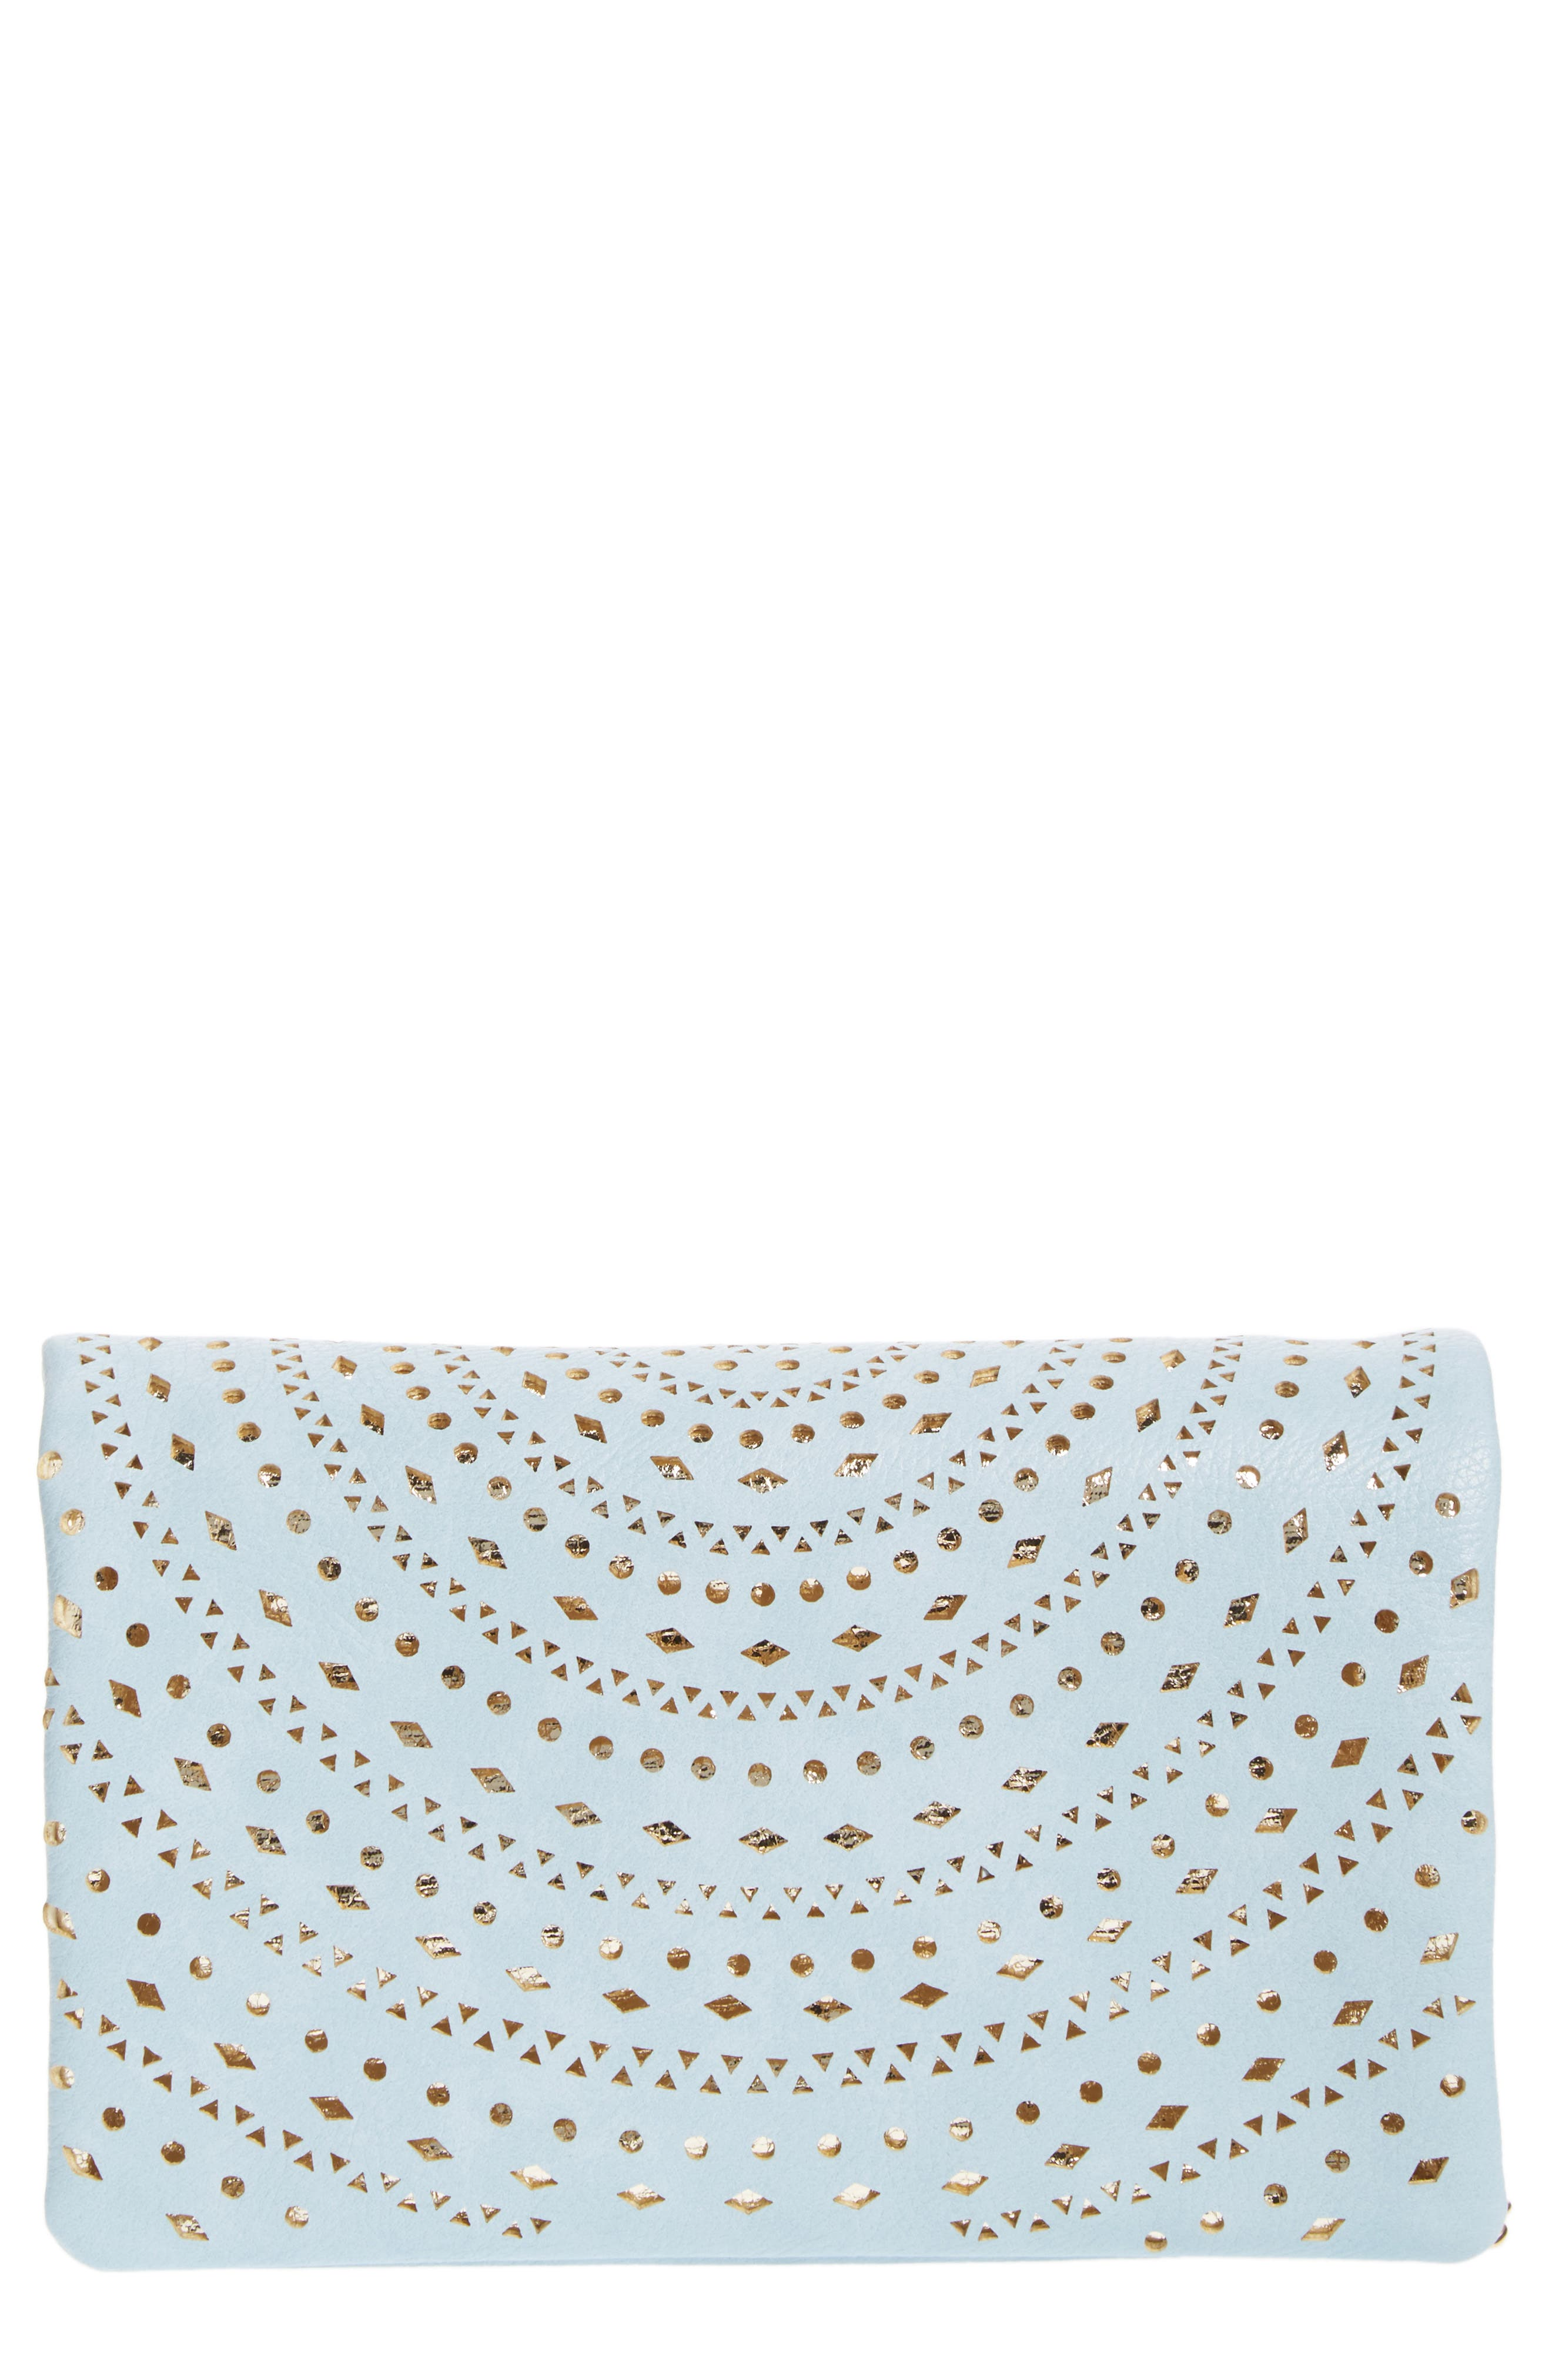 Street Level Perforated Faux Leather Crossbody Bag